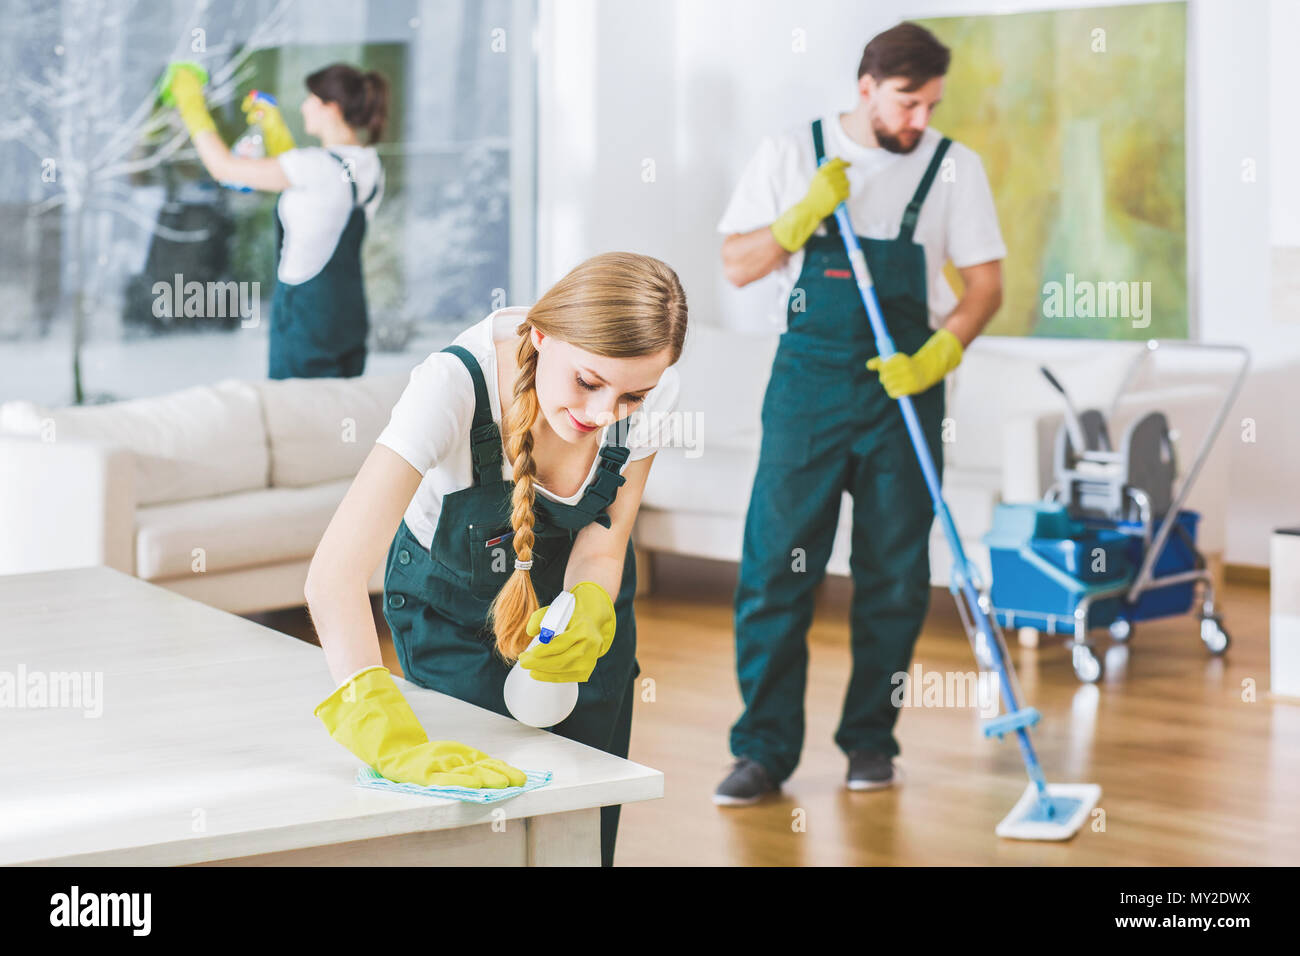 Cleaning service employees with professional equipment cleaning a private home after renovation - Stock Image